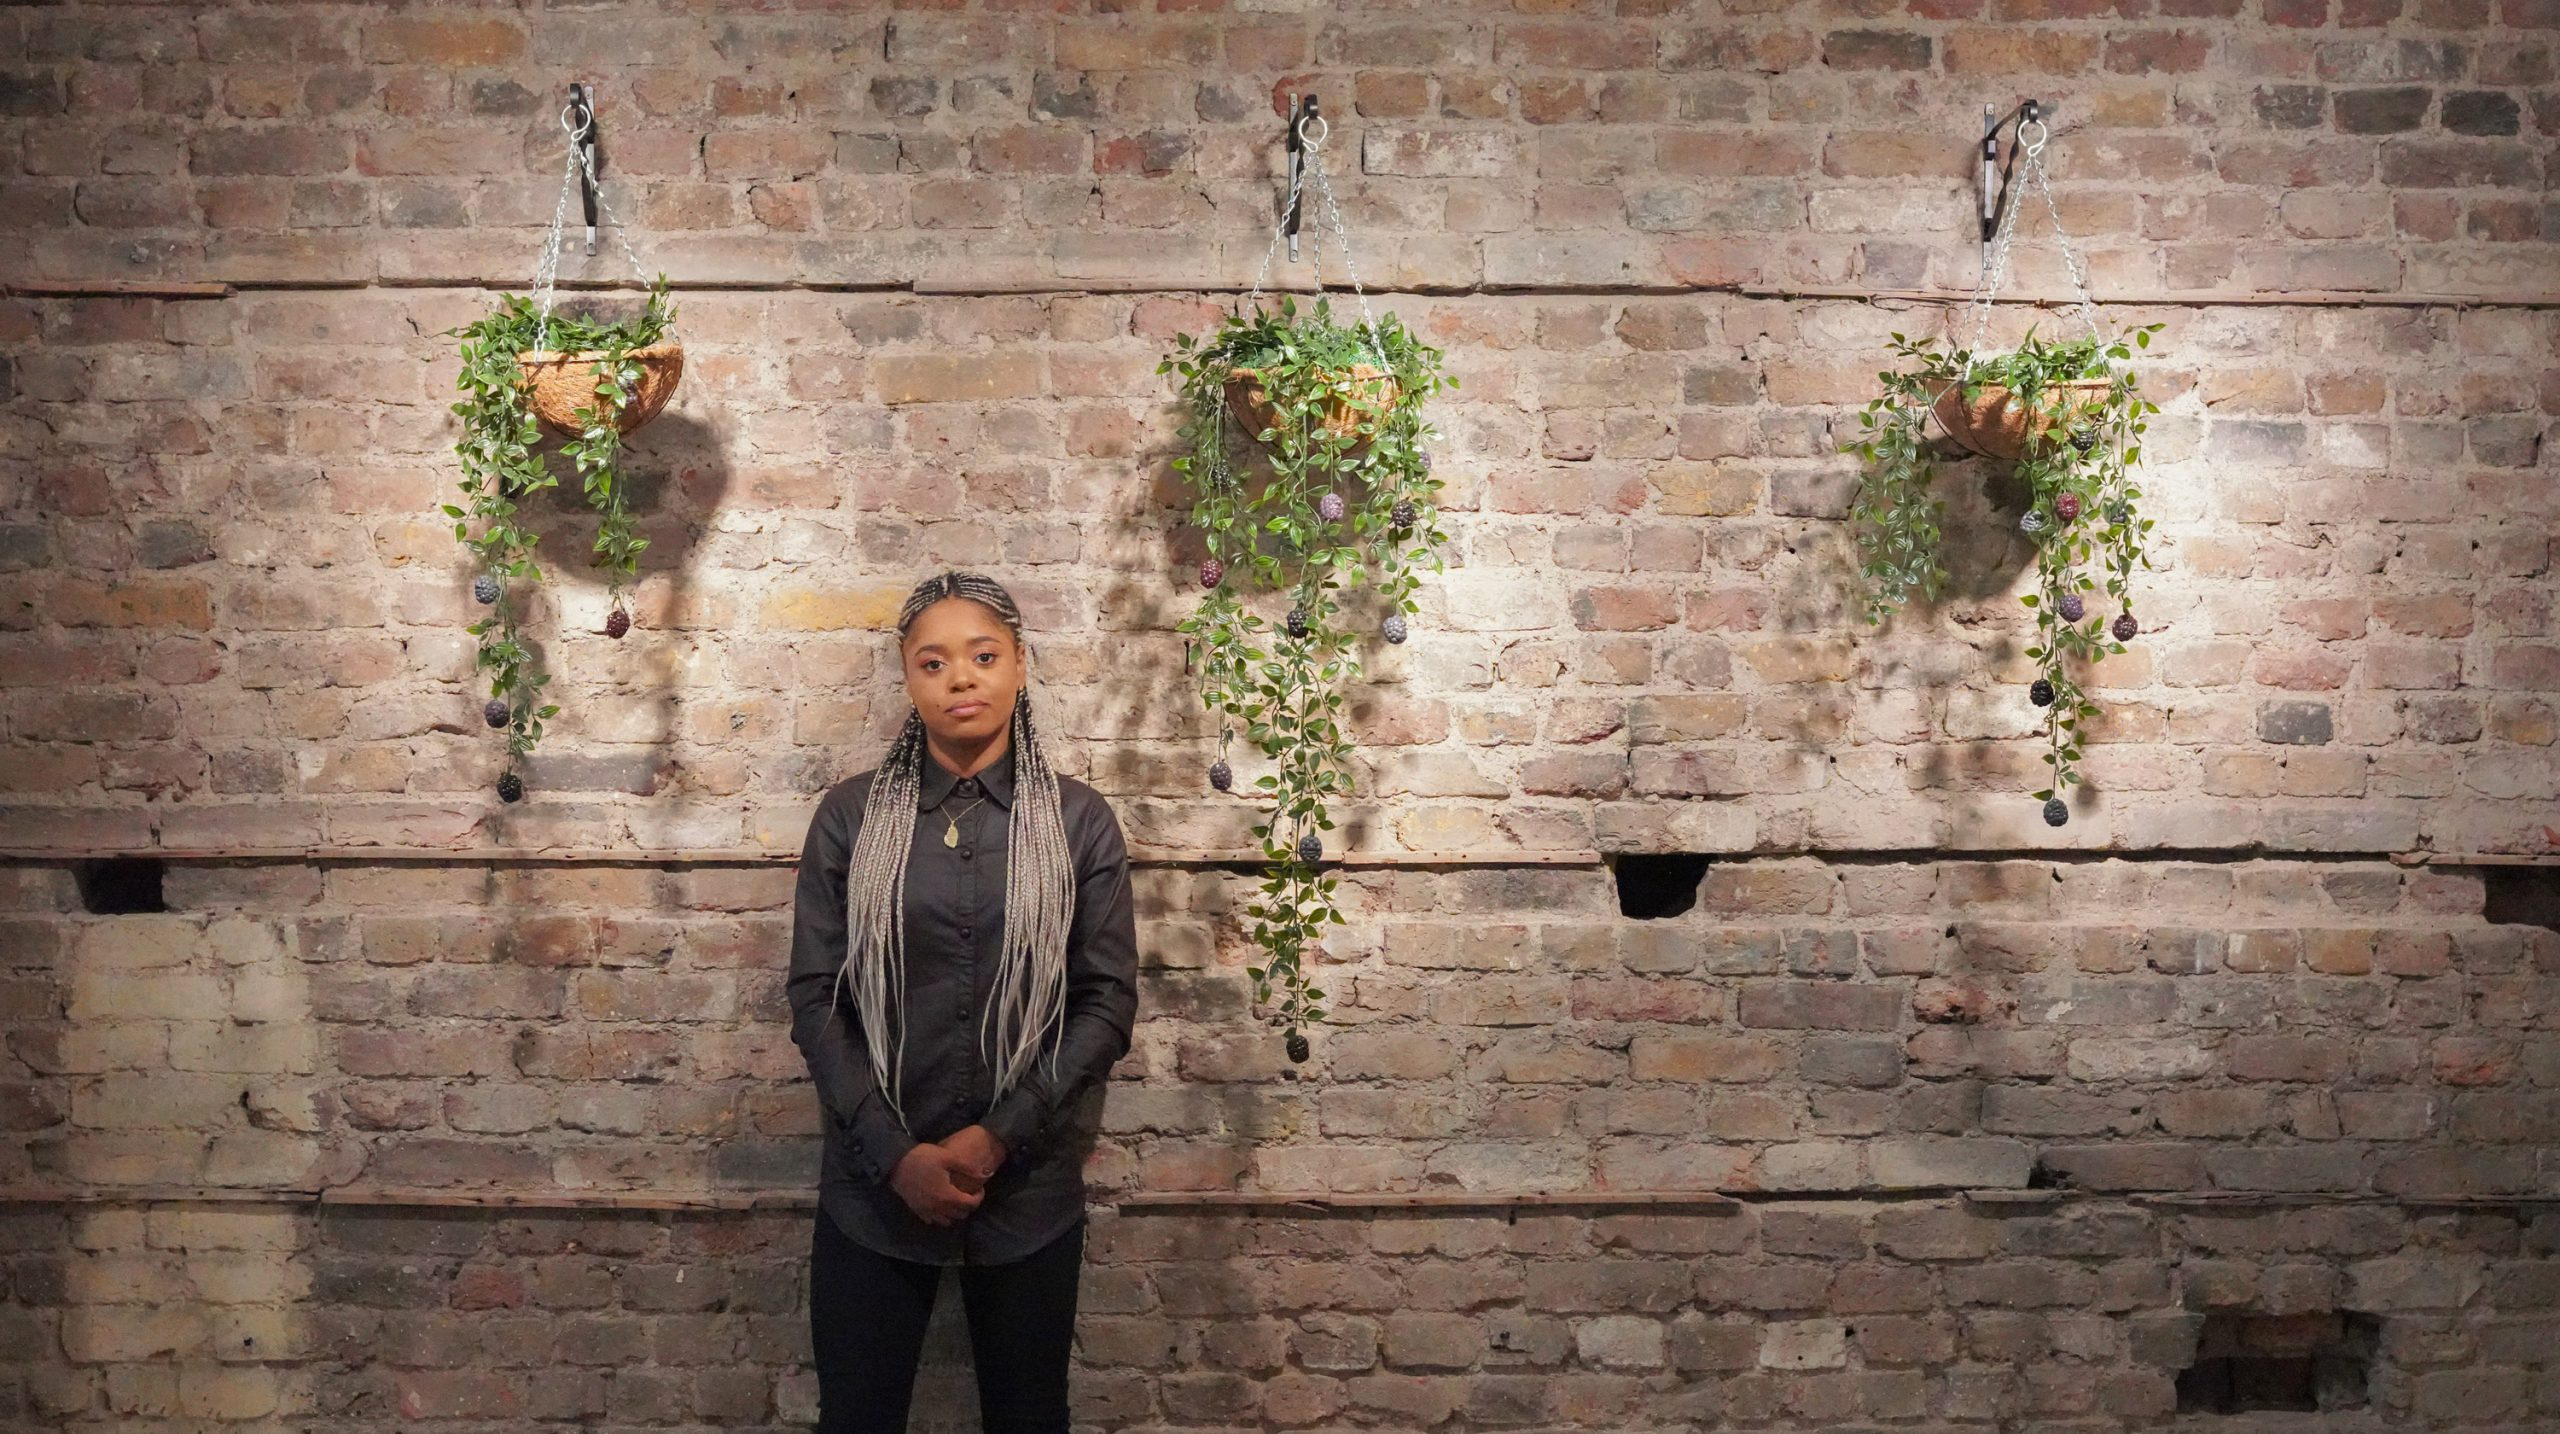 Lauren Marie Haywood beside some of her handmade plant artwork mounted on a brick wall